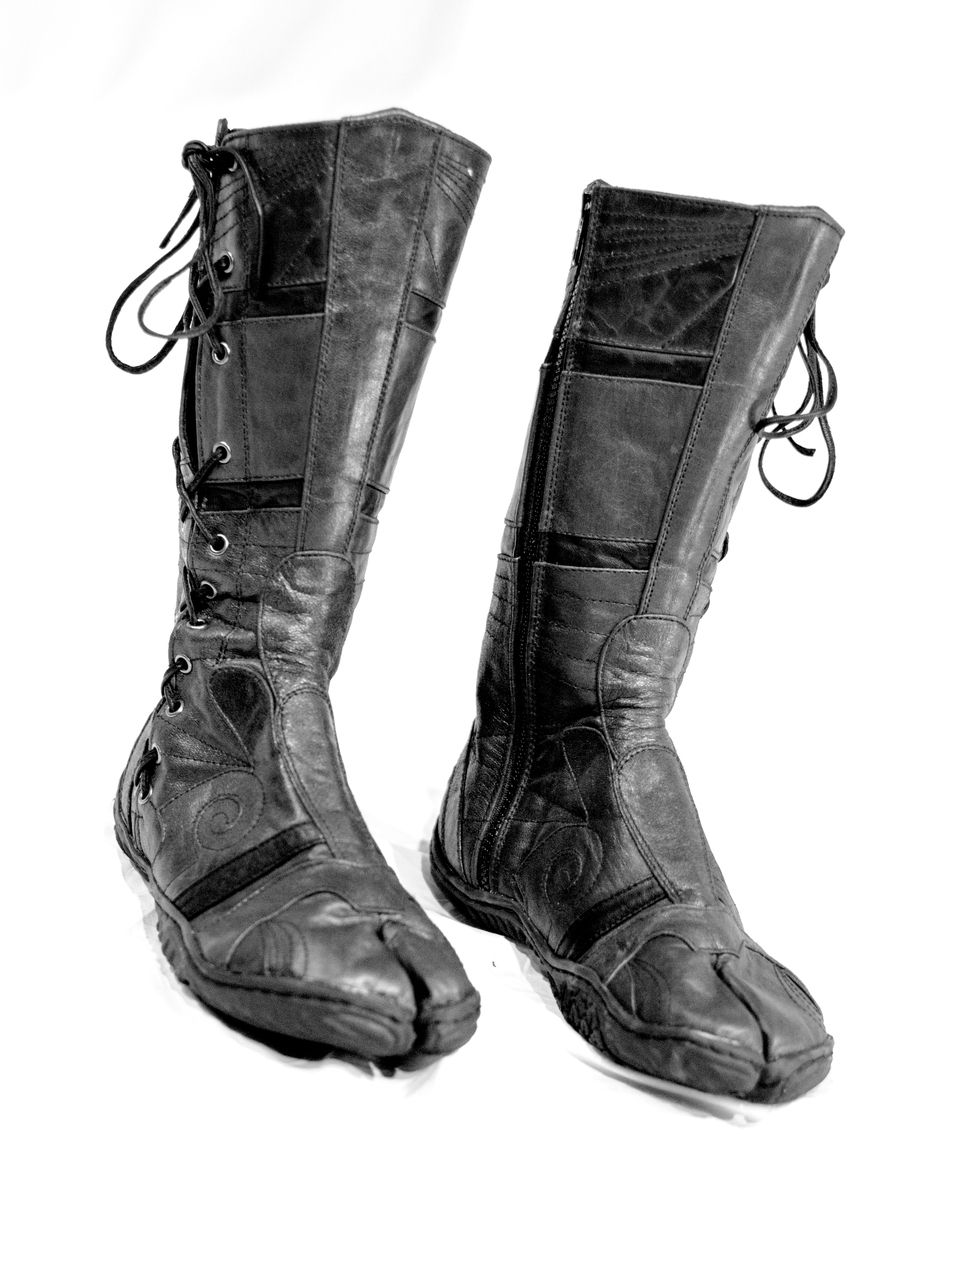 71c475928 Spiral Tabi Boots by Ayyawear | Clothes/Jewelry to Live In | Boots ...